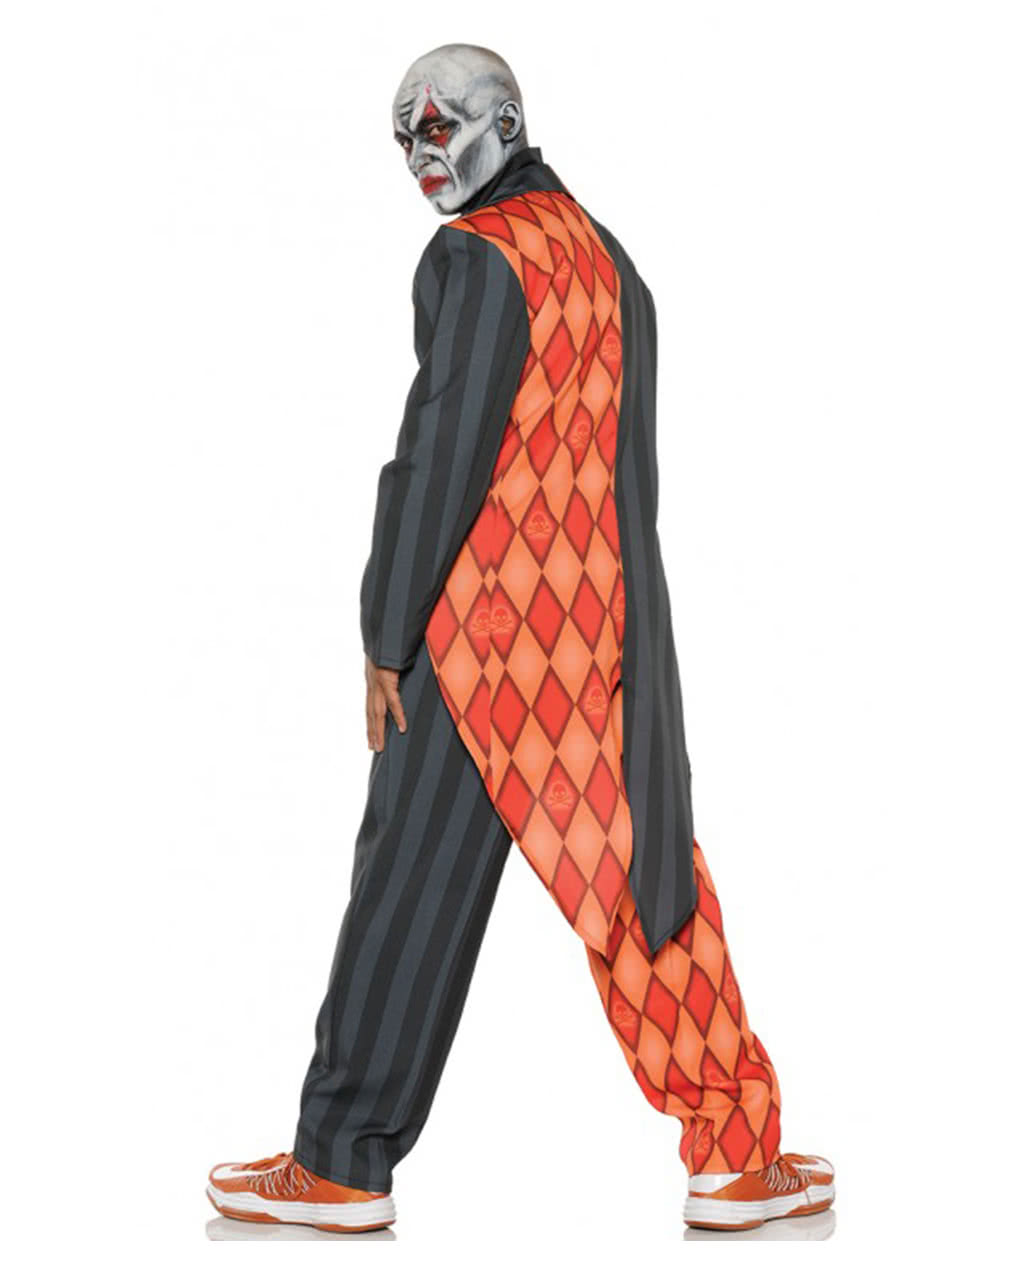 Evil Circus Clown Costume as Halloween disguise | horror-shop.com